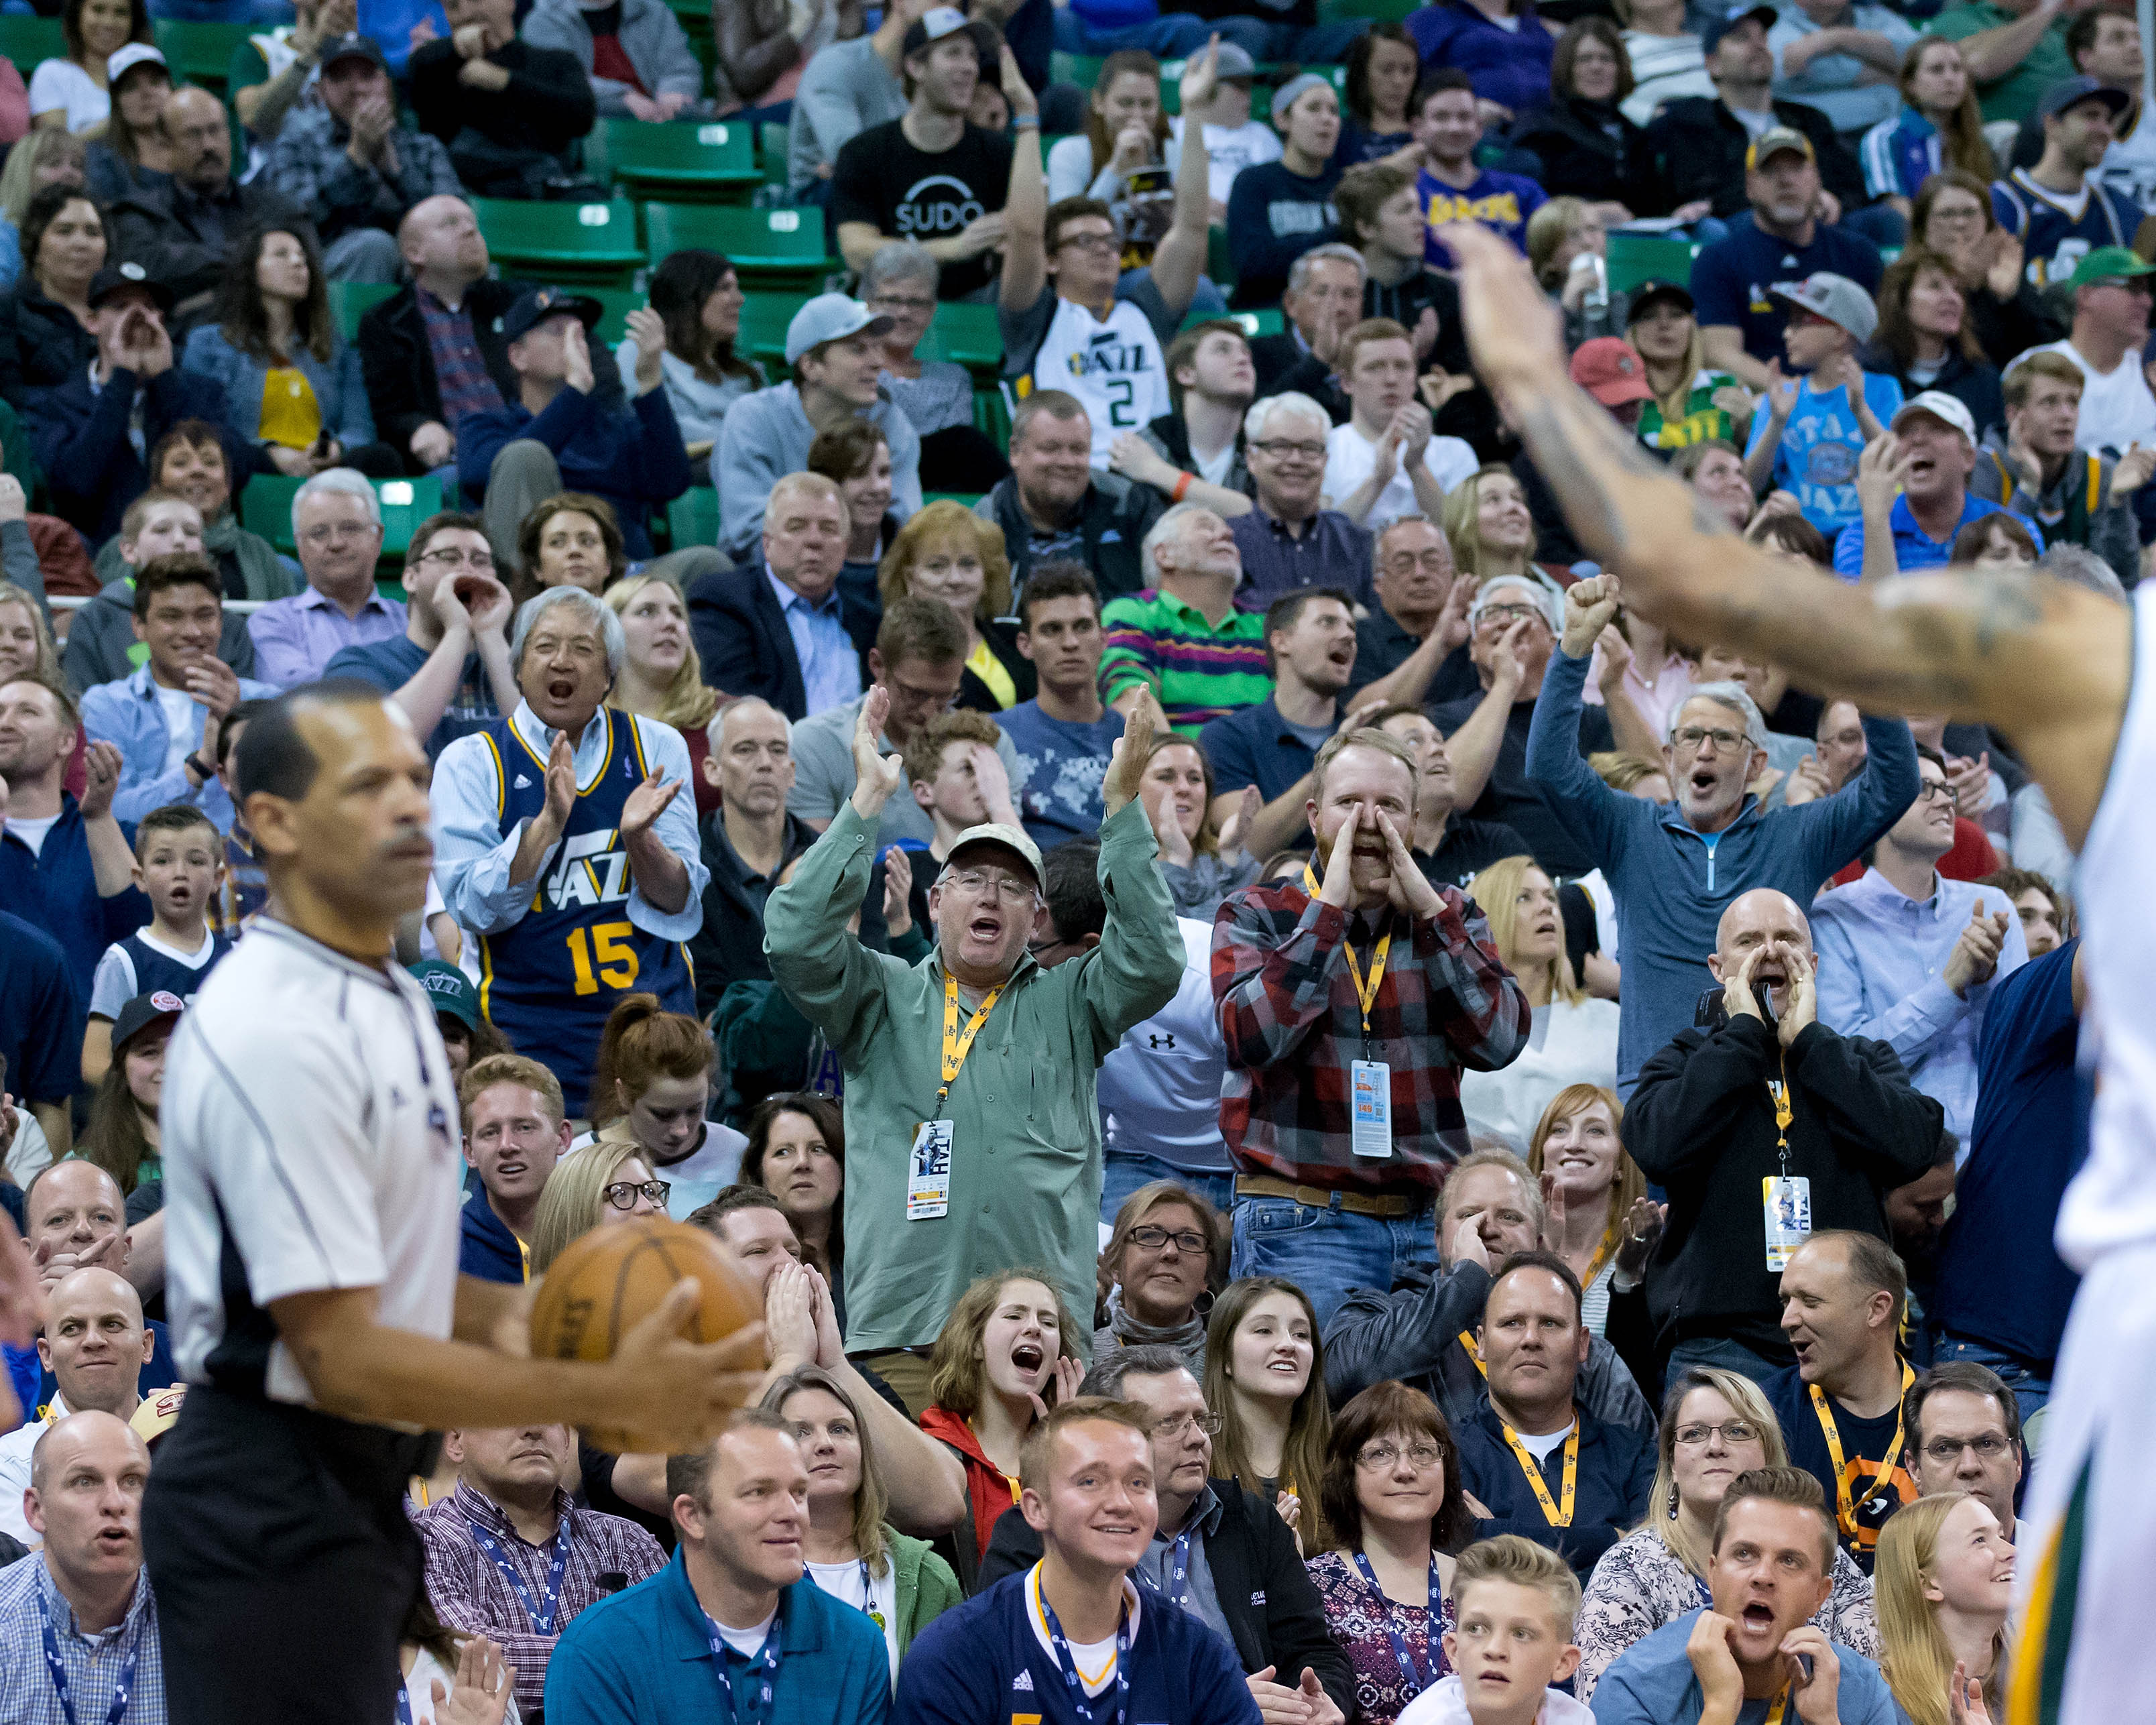 9976318-nba-new-orleans-pelicans-at-utah-jazz